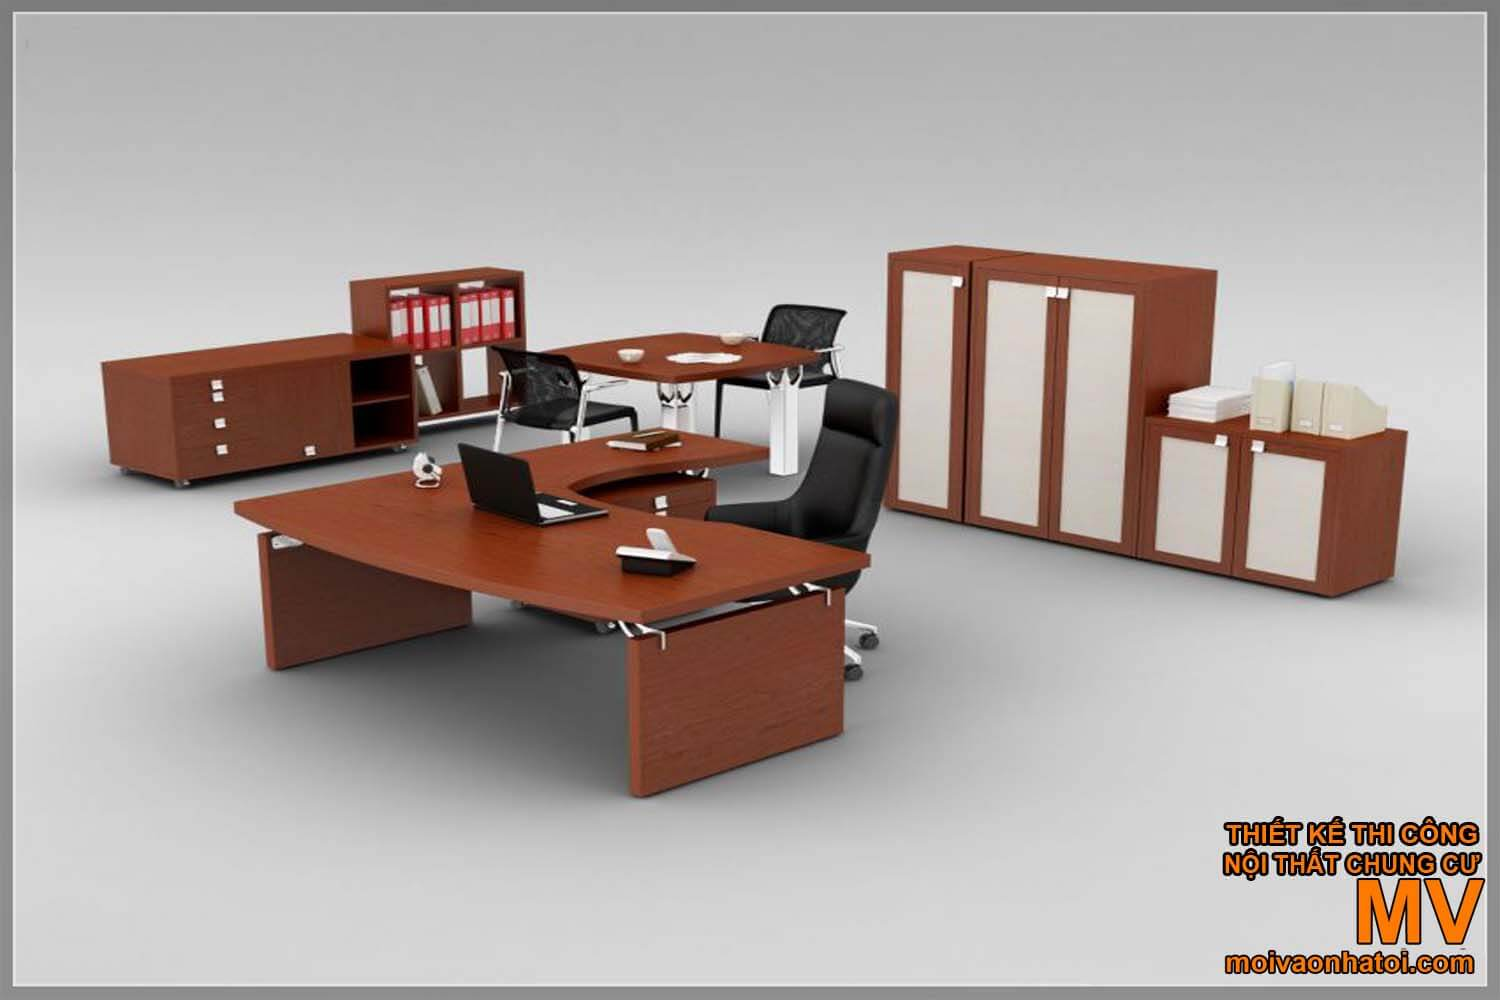 HOW TO CHOOSE AND PLACE CHAIRS IN THE OFFICE